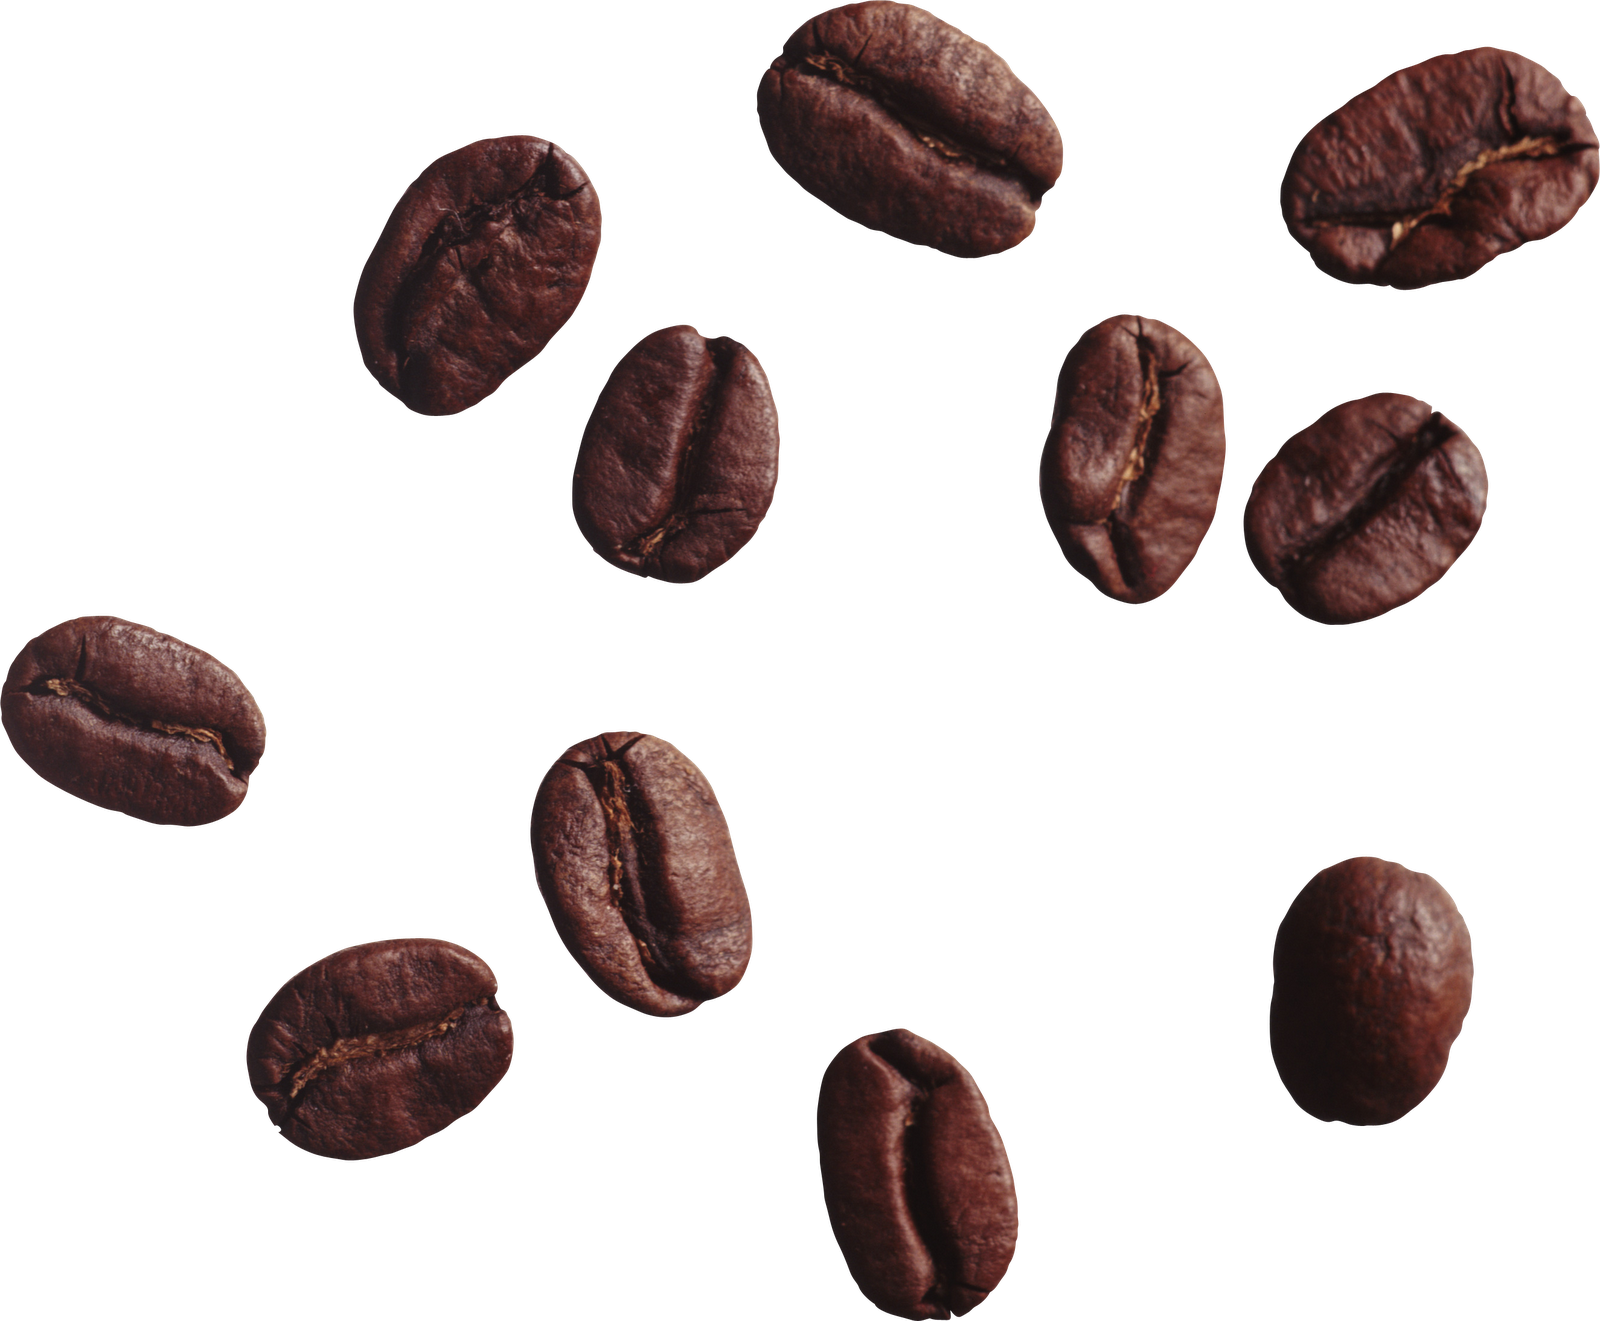 coffee beans PNG image Large size. Image Resolution: 512 x 512 - Coffee Beans PNG